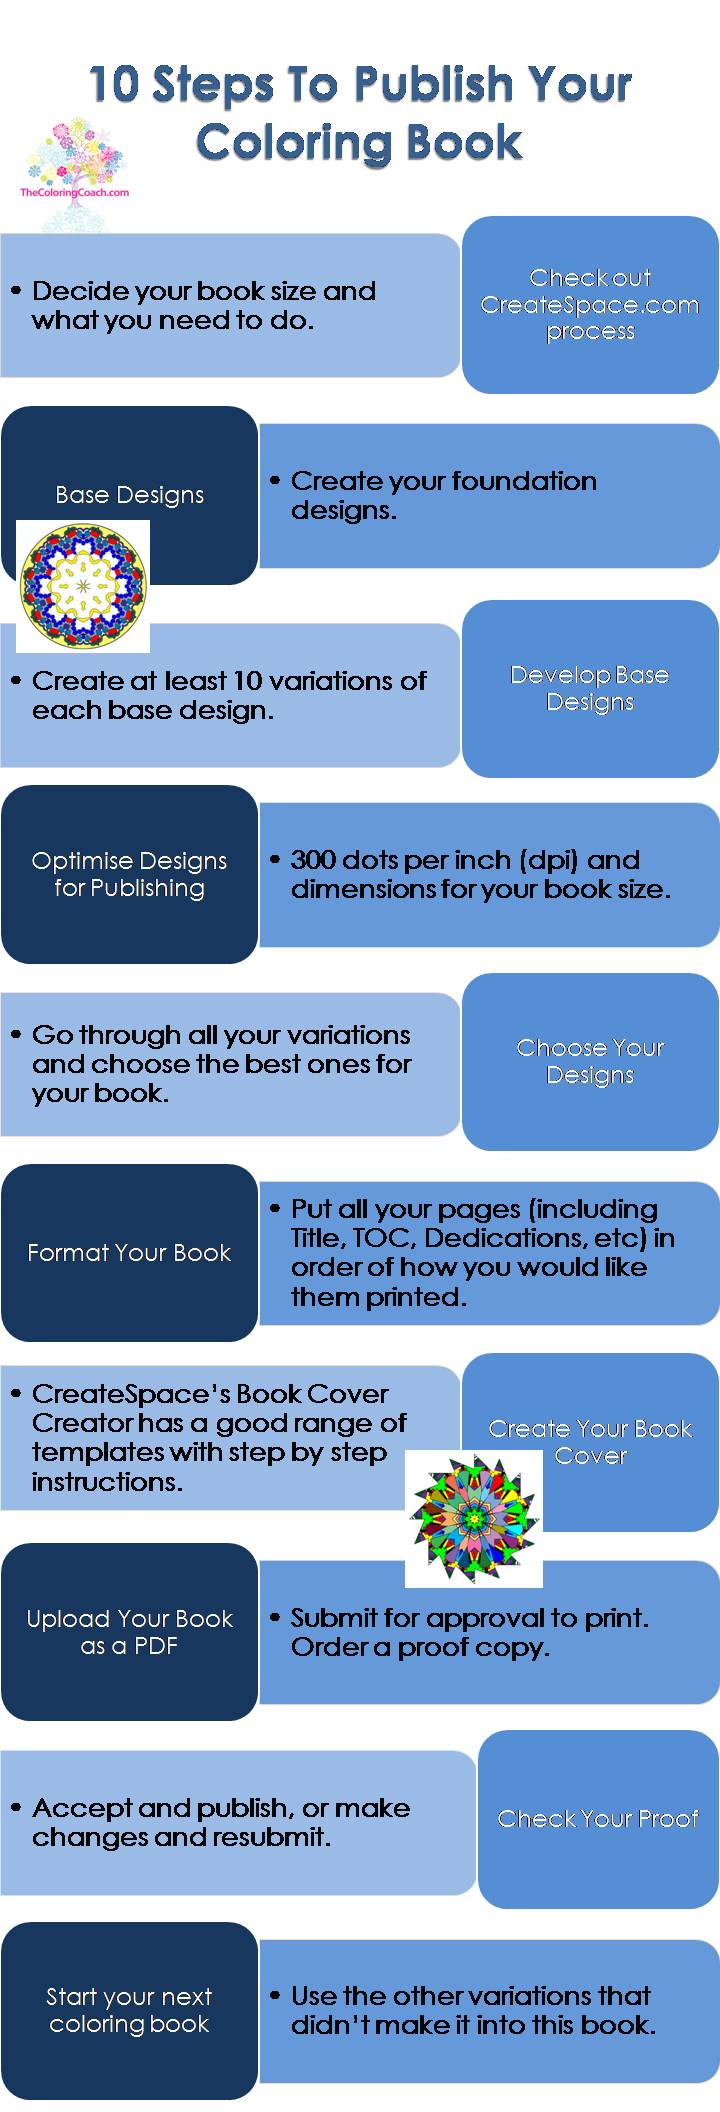 How To Self Publish Your Coloring Book